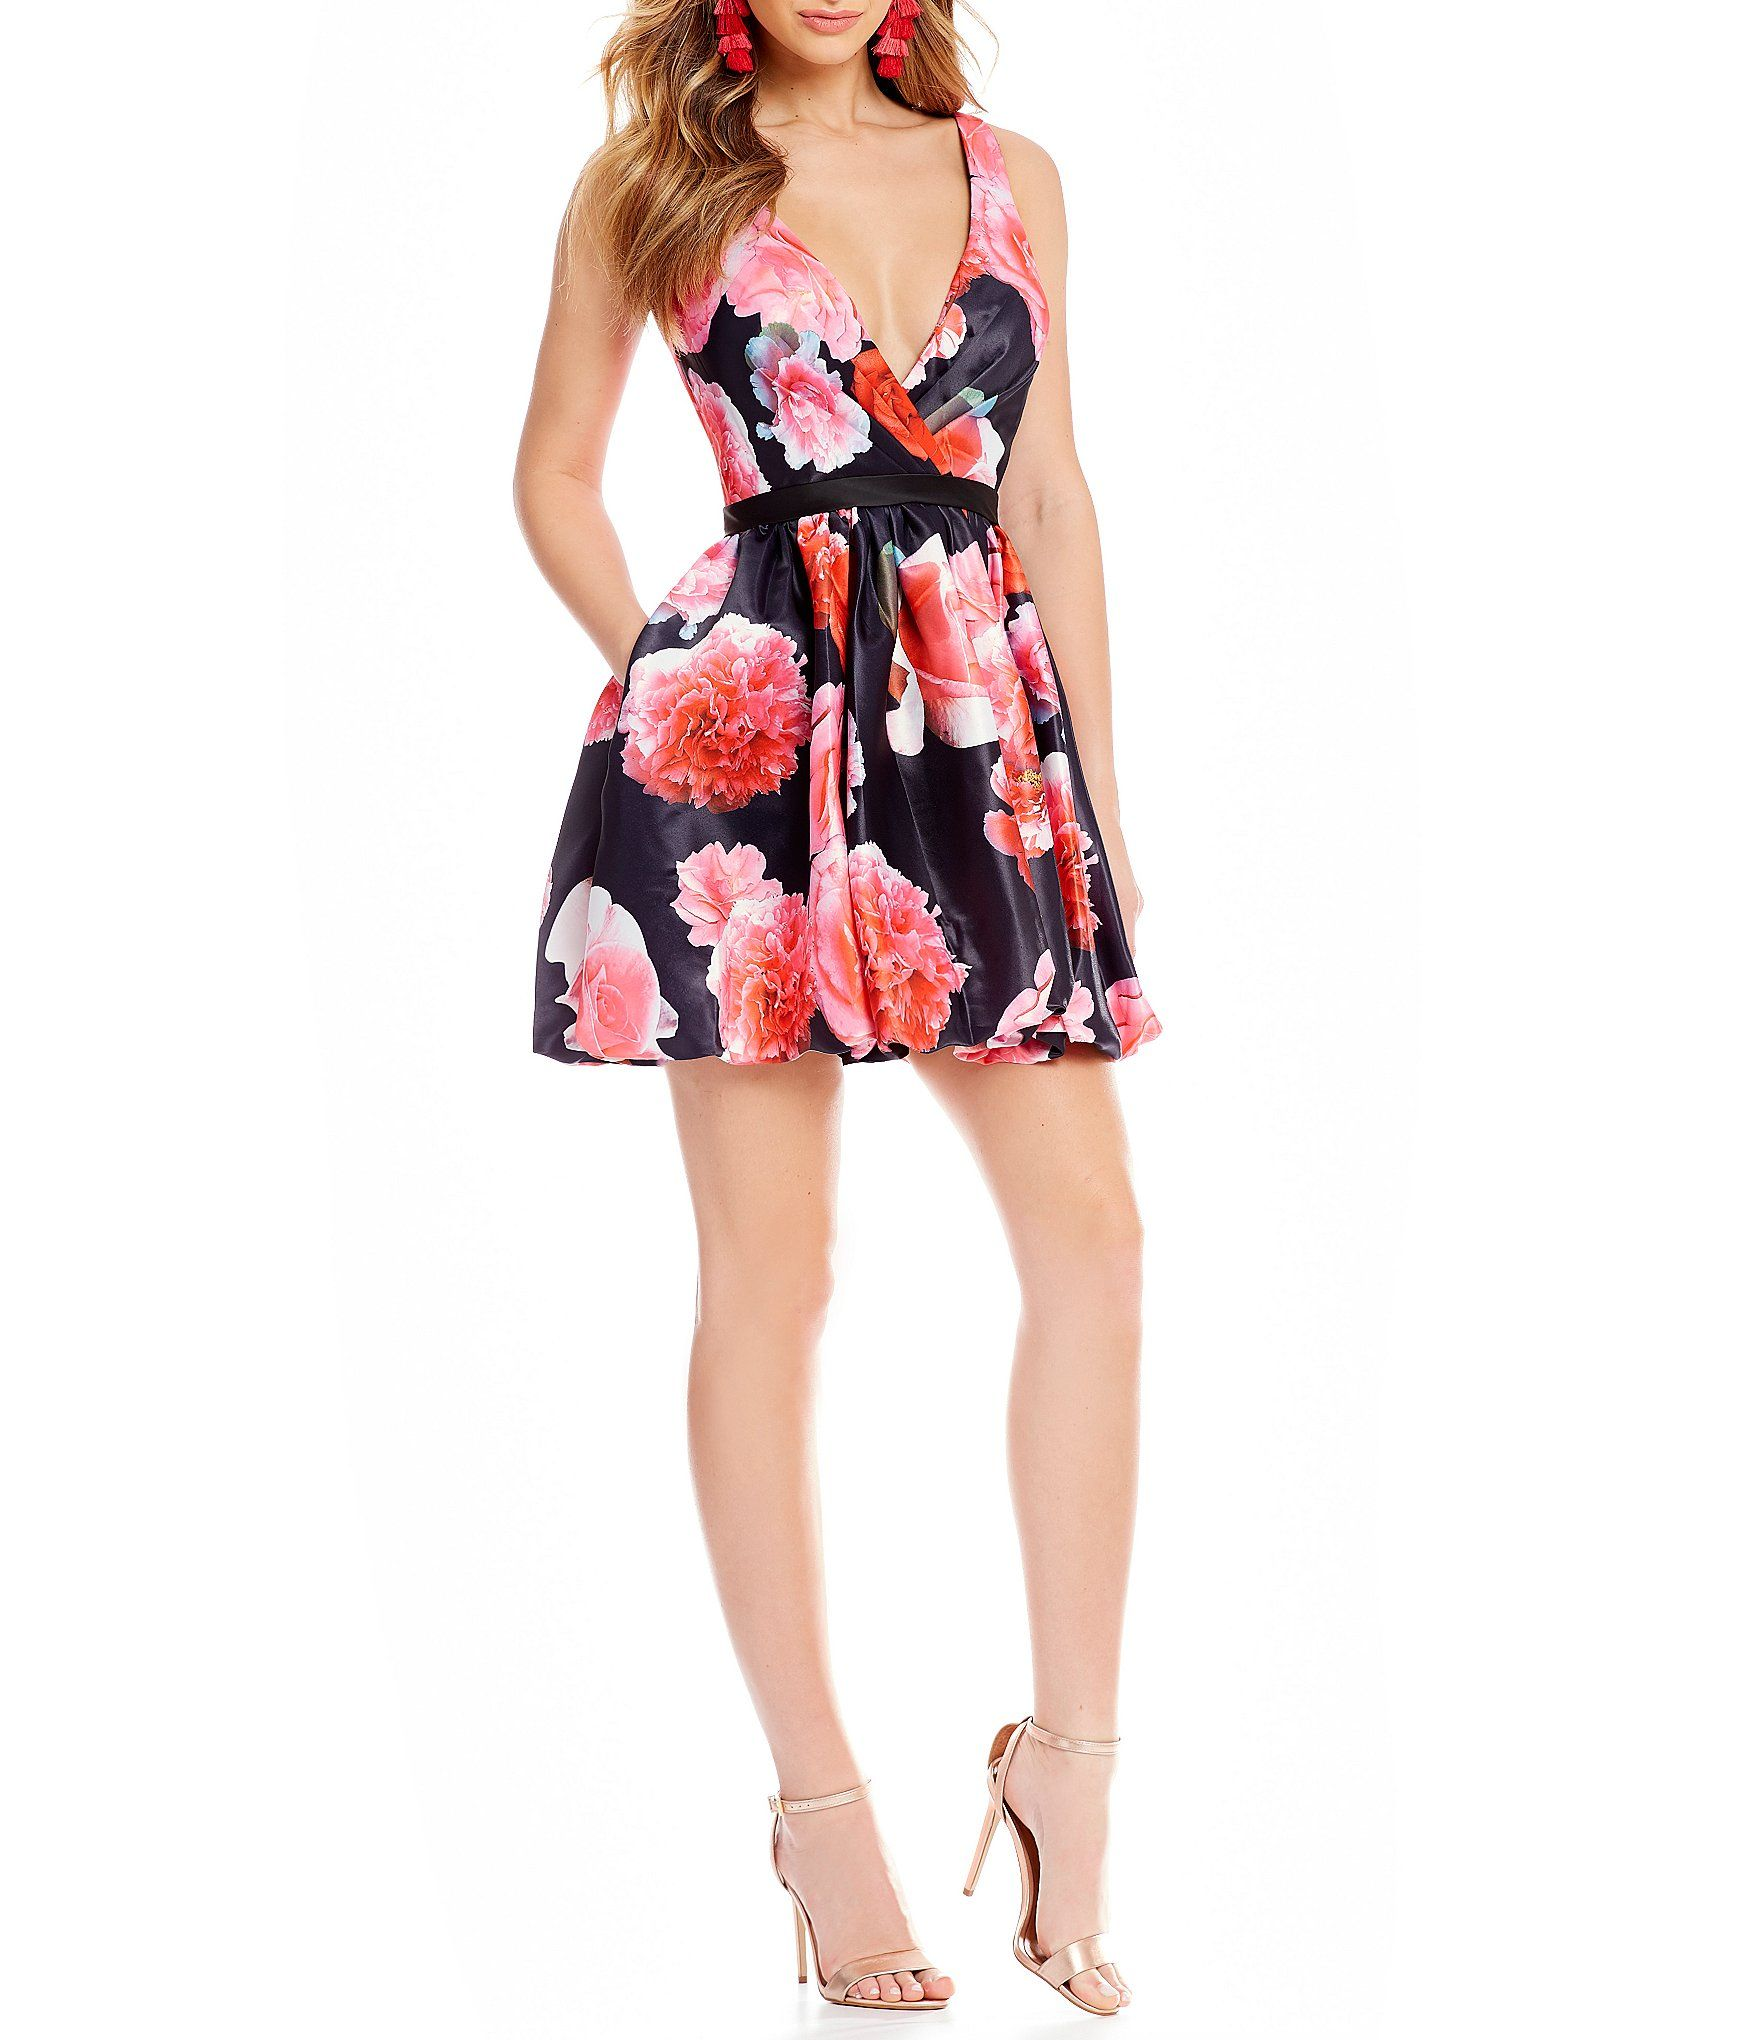 8cdf9943abf Glamour by Terani Couture Surplice Floral Print Fit and Flare Dress   Dillards